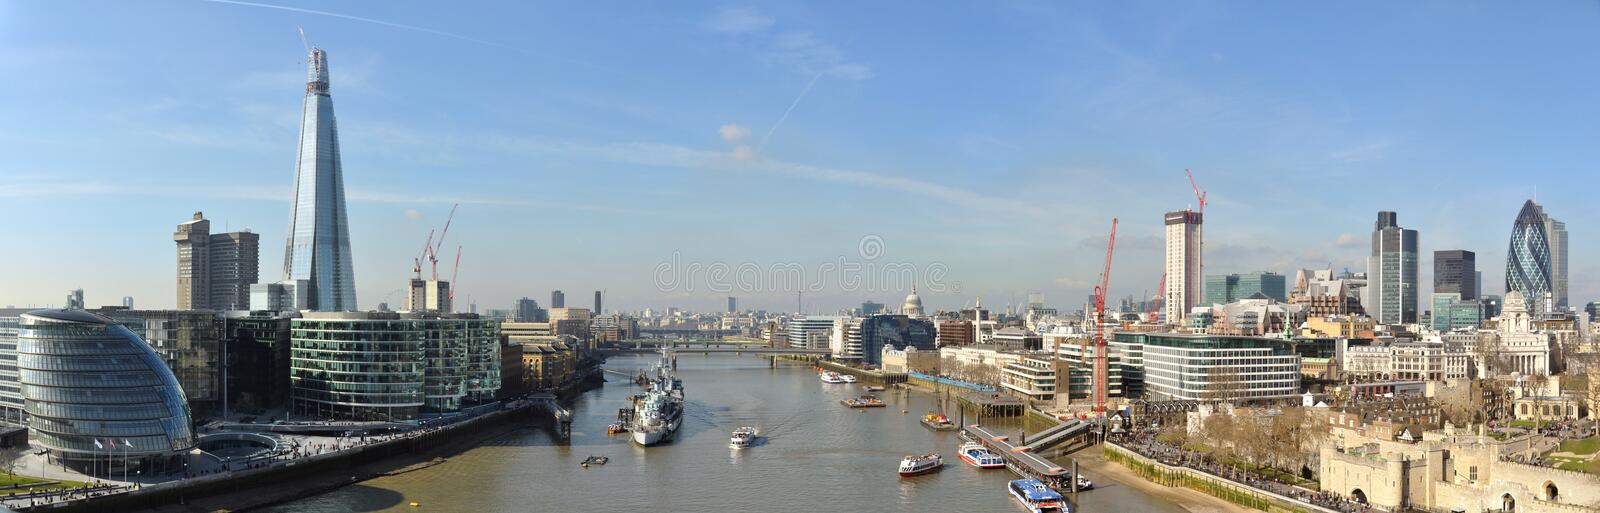 Download Thames And London City Panorama From Tower Bridge Stock Image - Image: 23712495